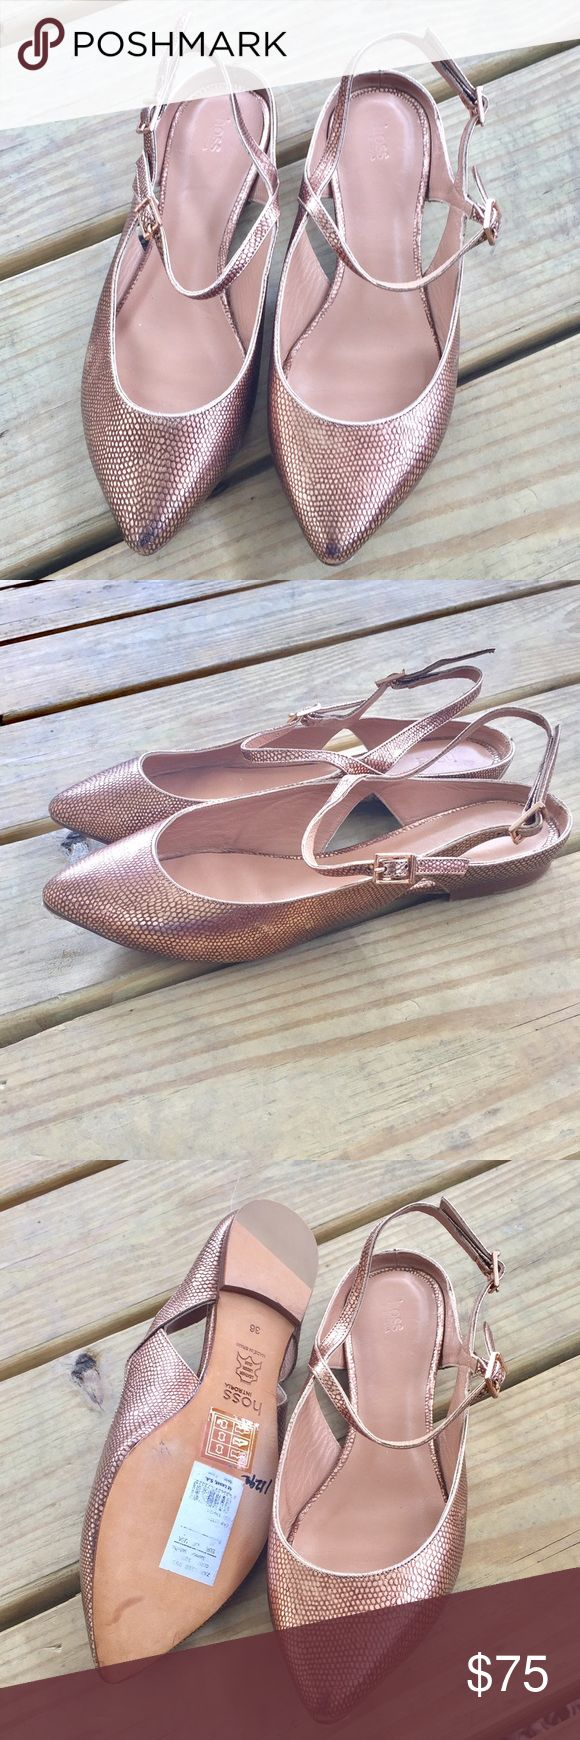 Hoss Intropia Slingback Flats!! Beautiful salmon colored metallic flats featuring double buckle straps! I won't be able to model these because these aren't my size. These were never worn! **Small tear on heel but not noticeable when worn** Shoes Flats & Loafers